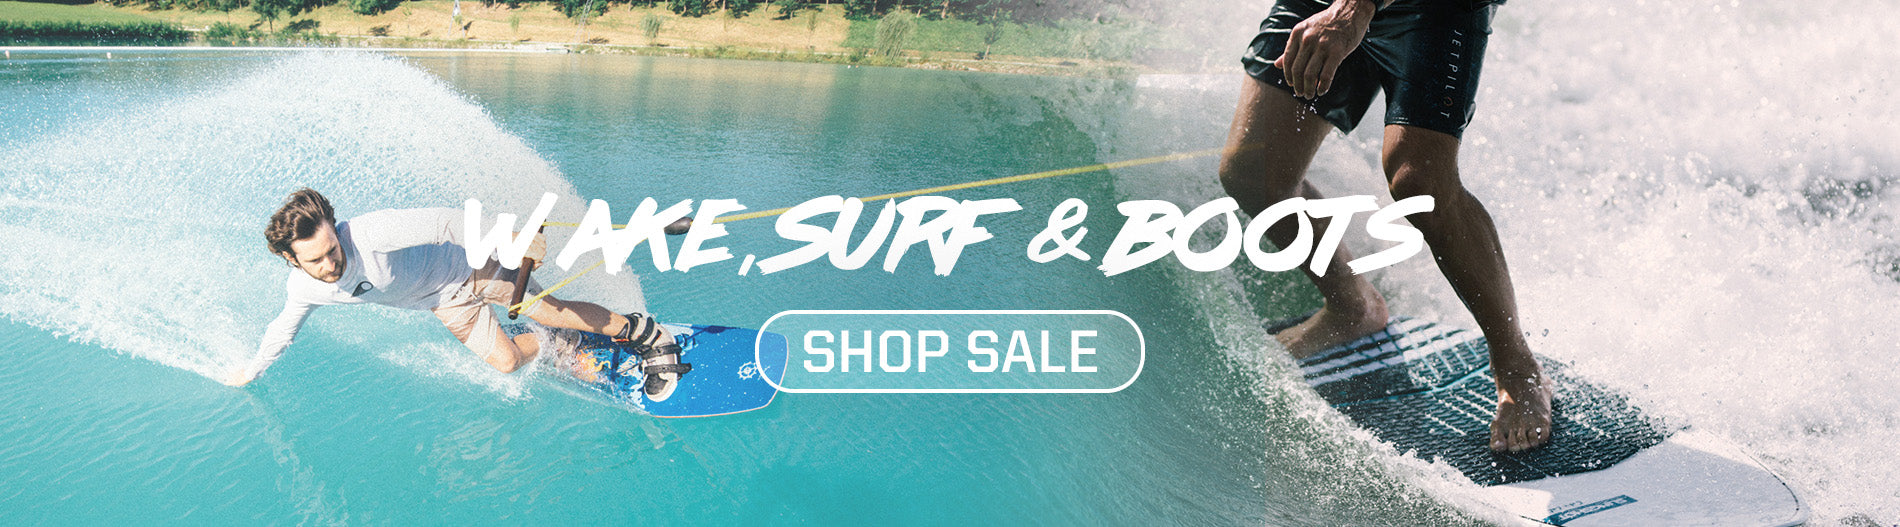 Slingshot wakeboards,surfboards and boots october clearance sale